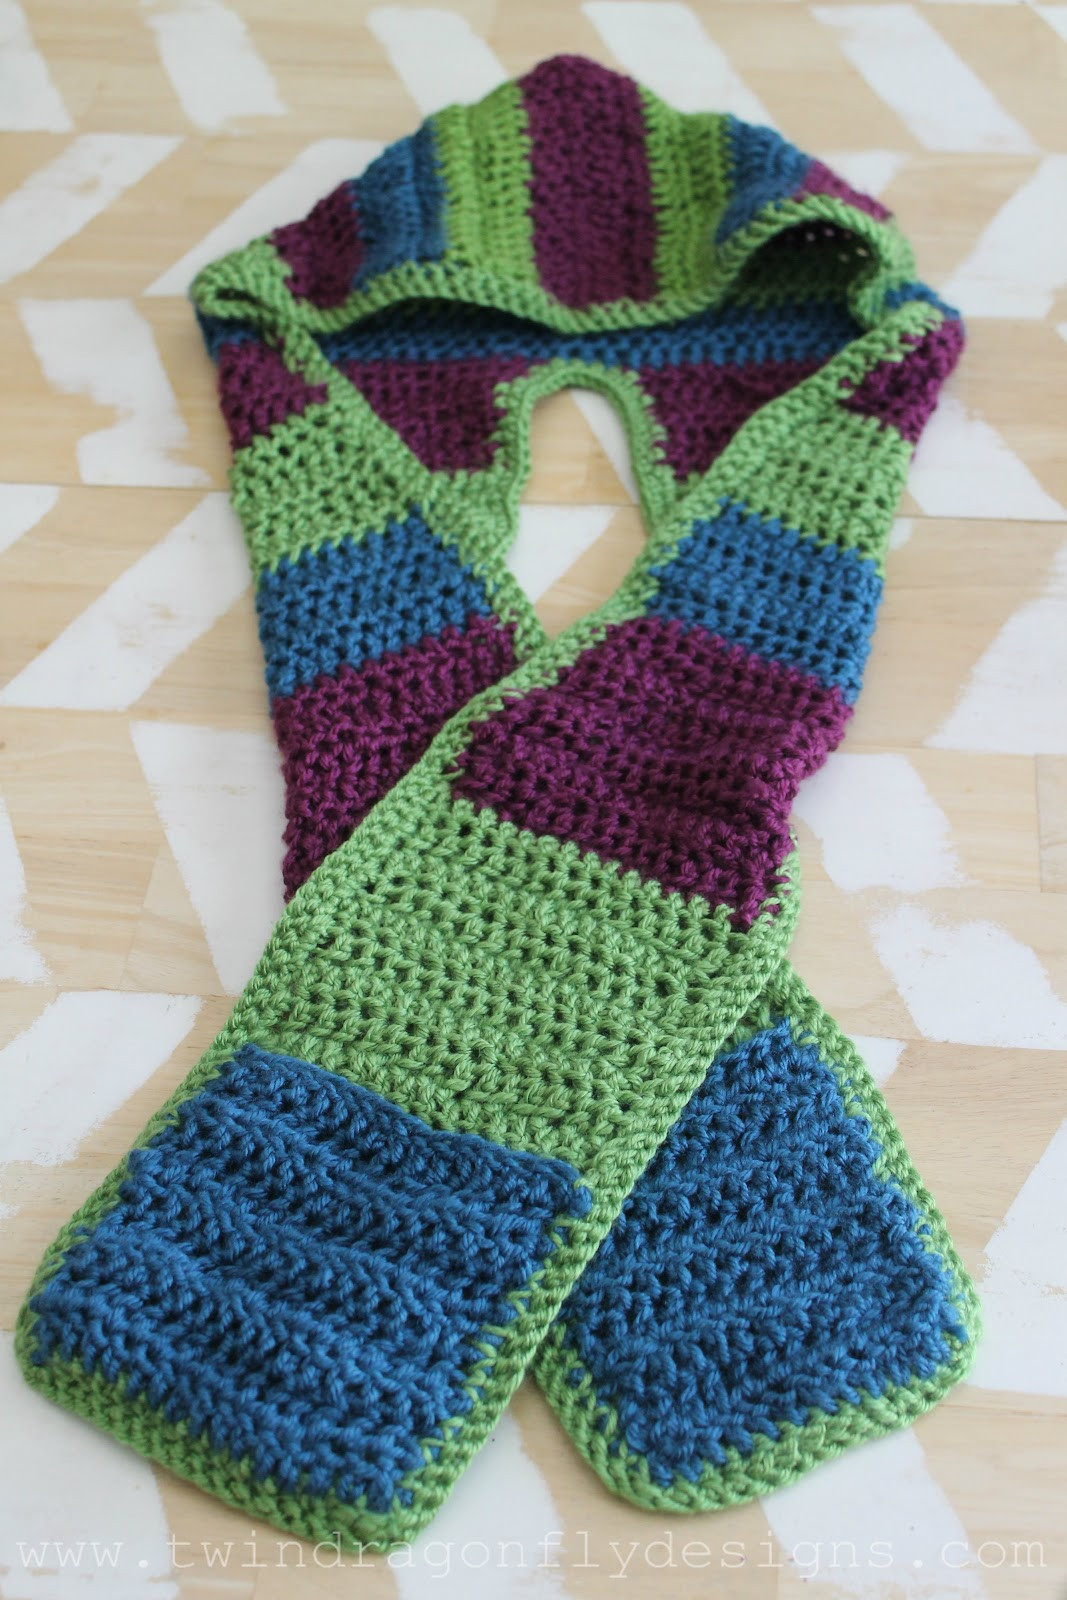 Awesome Crochet Hooded Scarf Pattern Dragonfly Designs Free Crochet Hood Pattern Of Great 43 Photos Free Crochet Hood Pattern